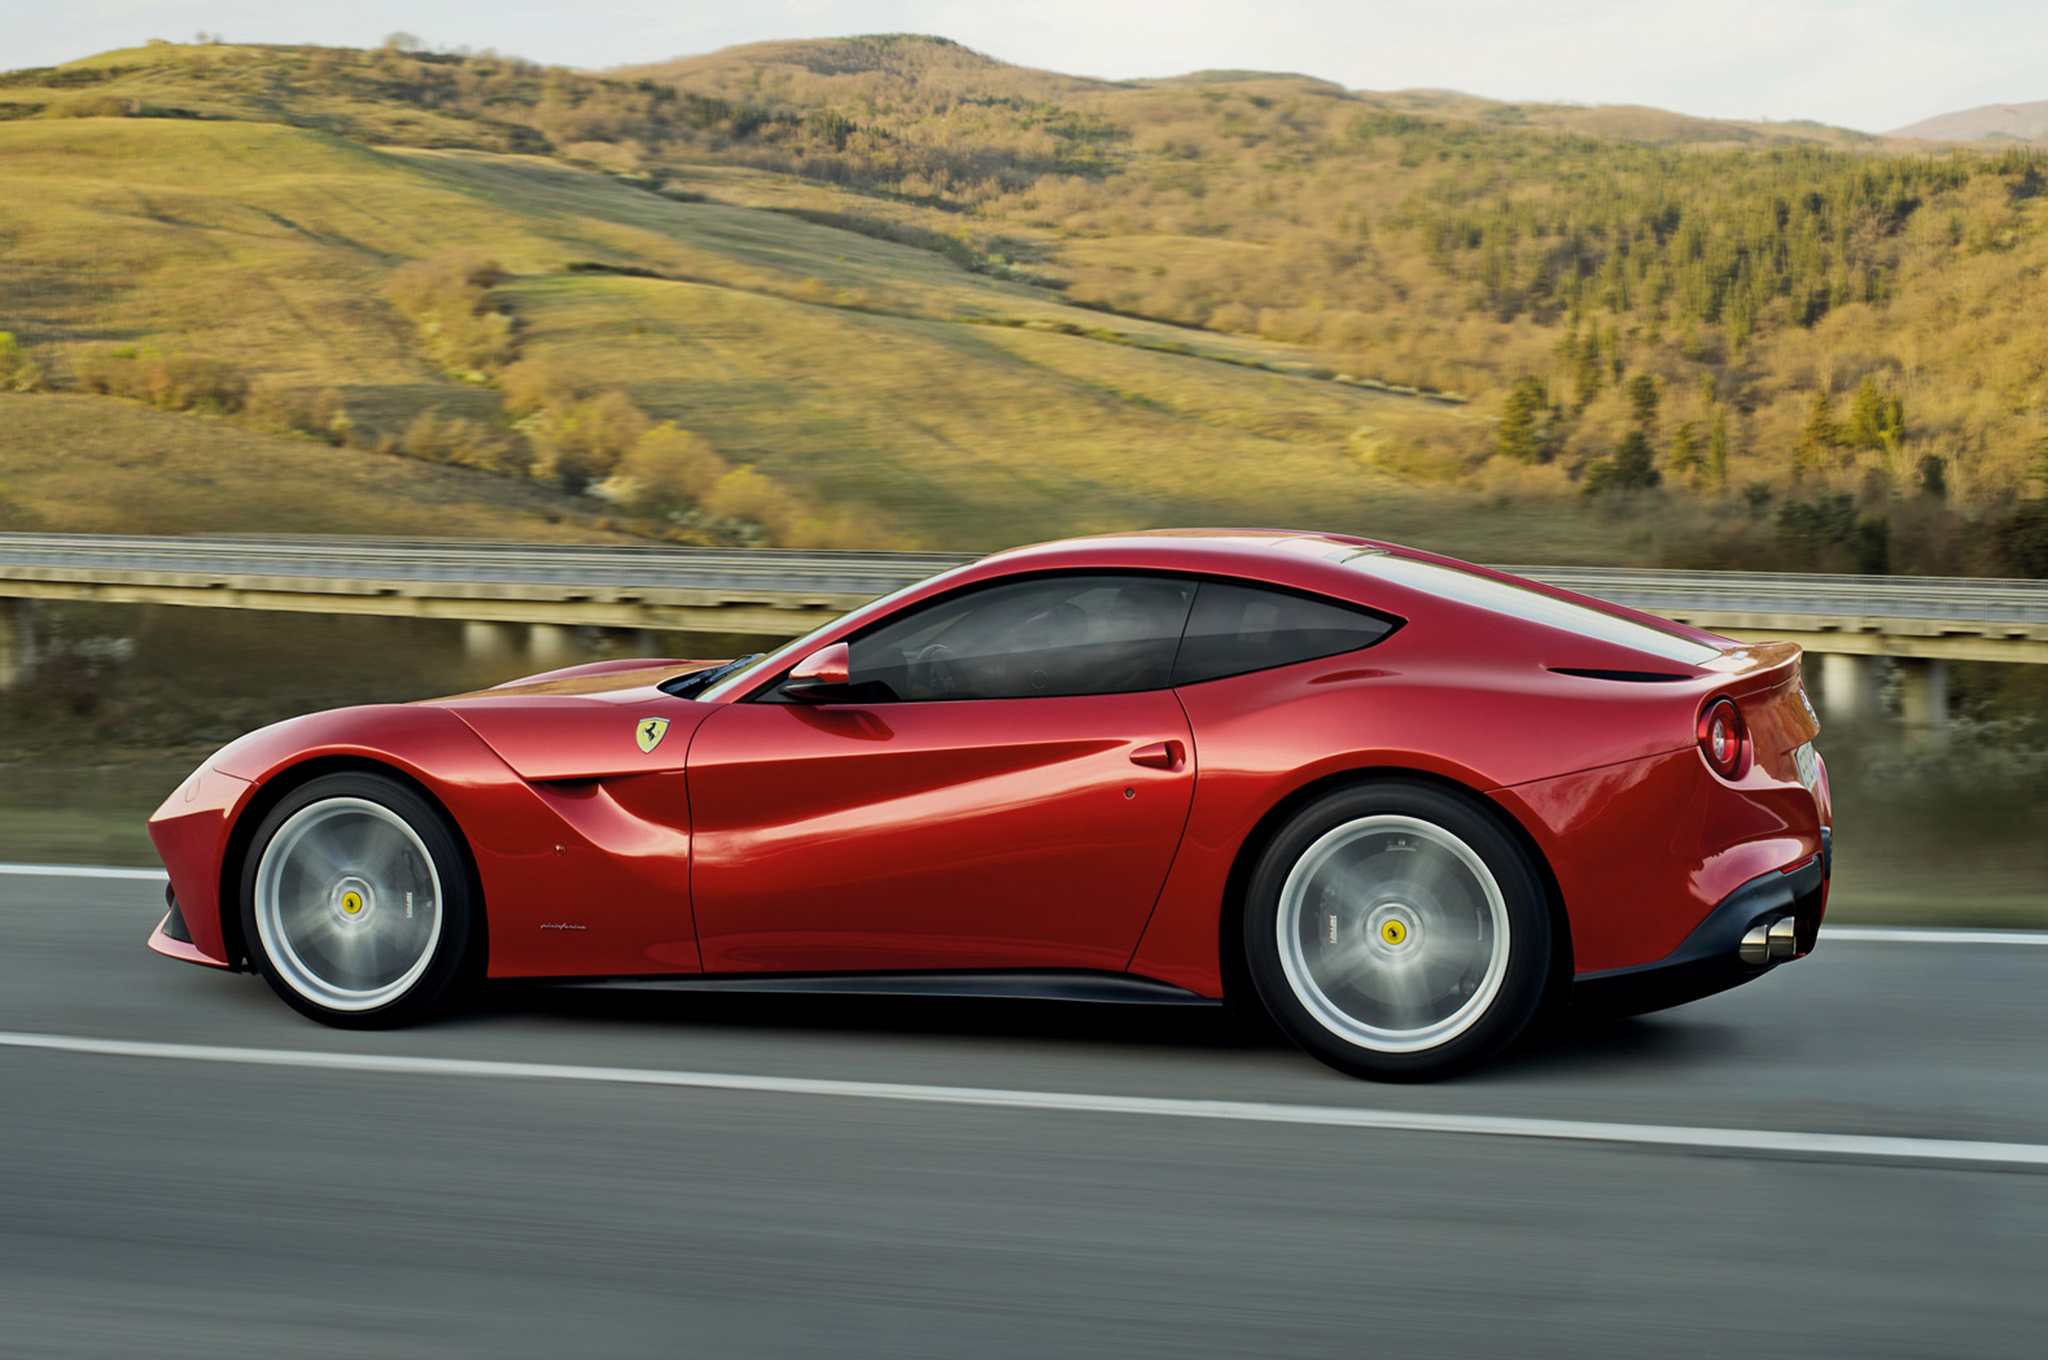 2015 Ferrari F12 Berlinetta 27 Car Background